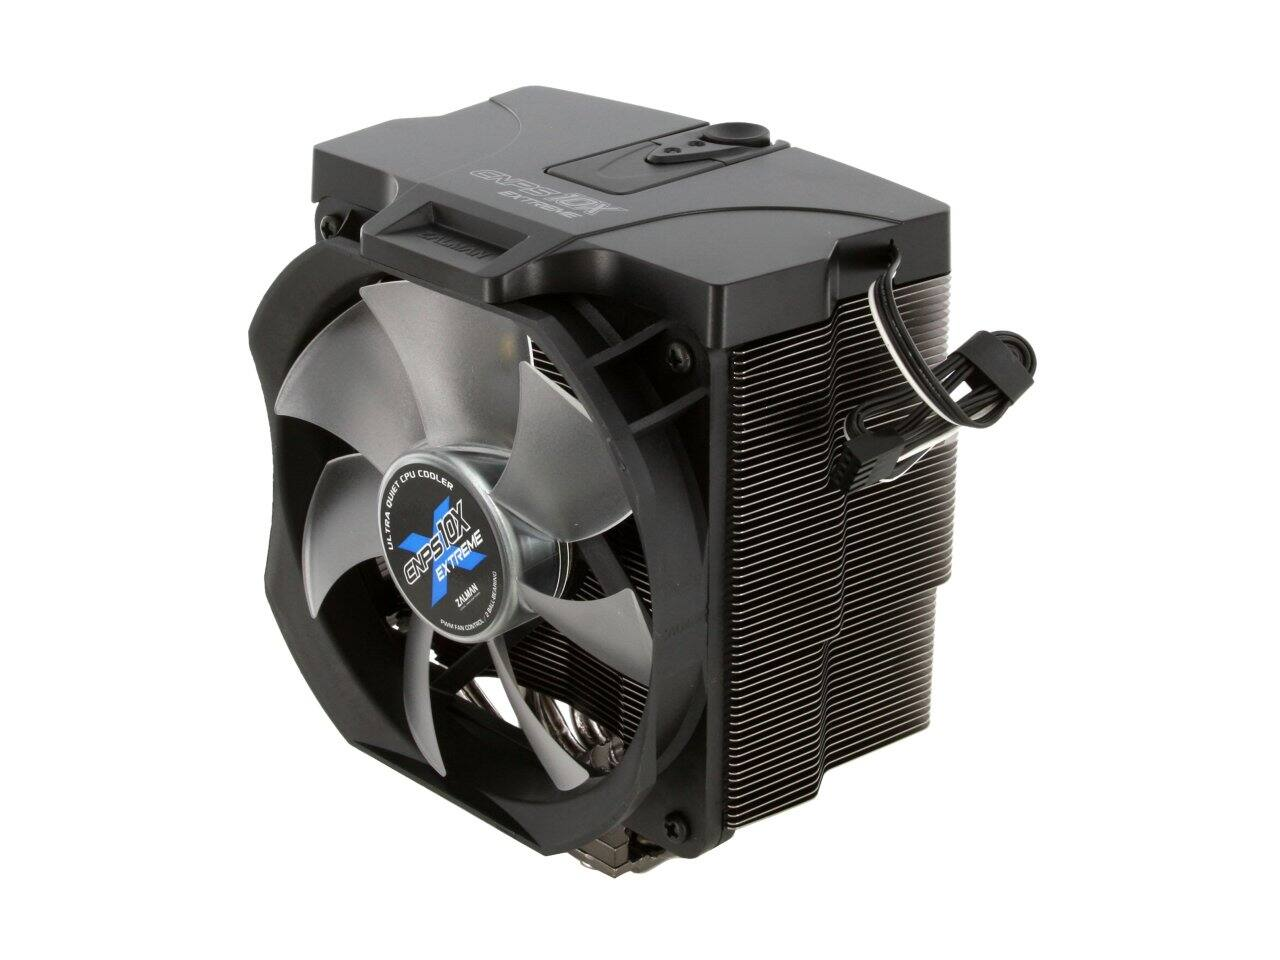 Zalman CNPS10X Extreme 120mm CPU Cooler with PWM Fan Speed Controller for $14.99 AR + Free Shipping @ Newegg.com